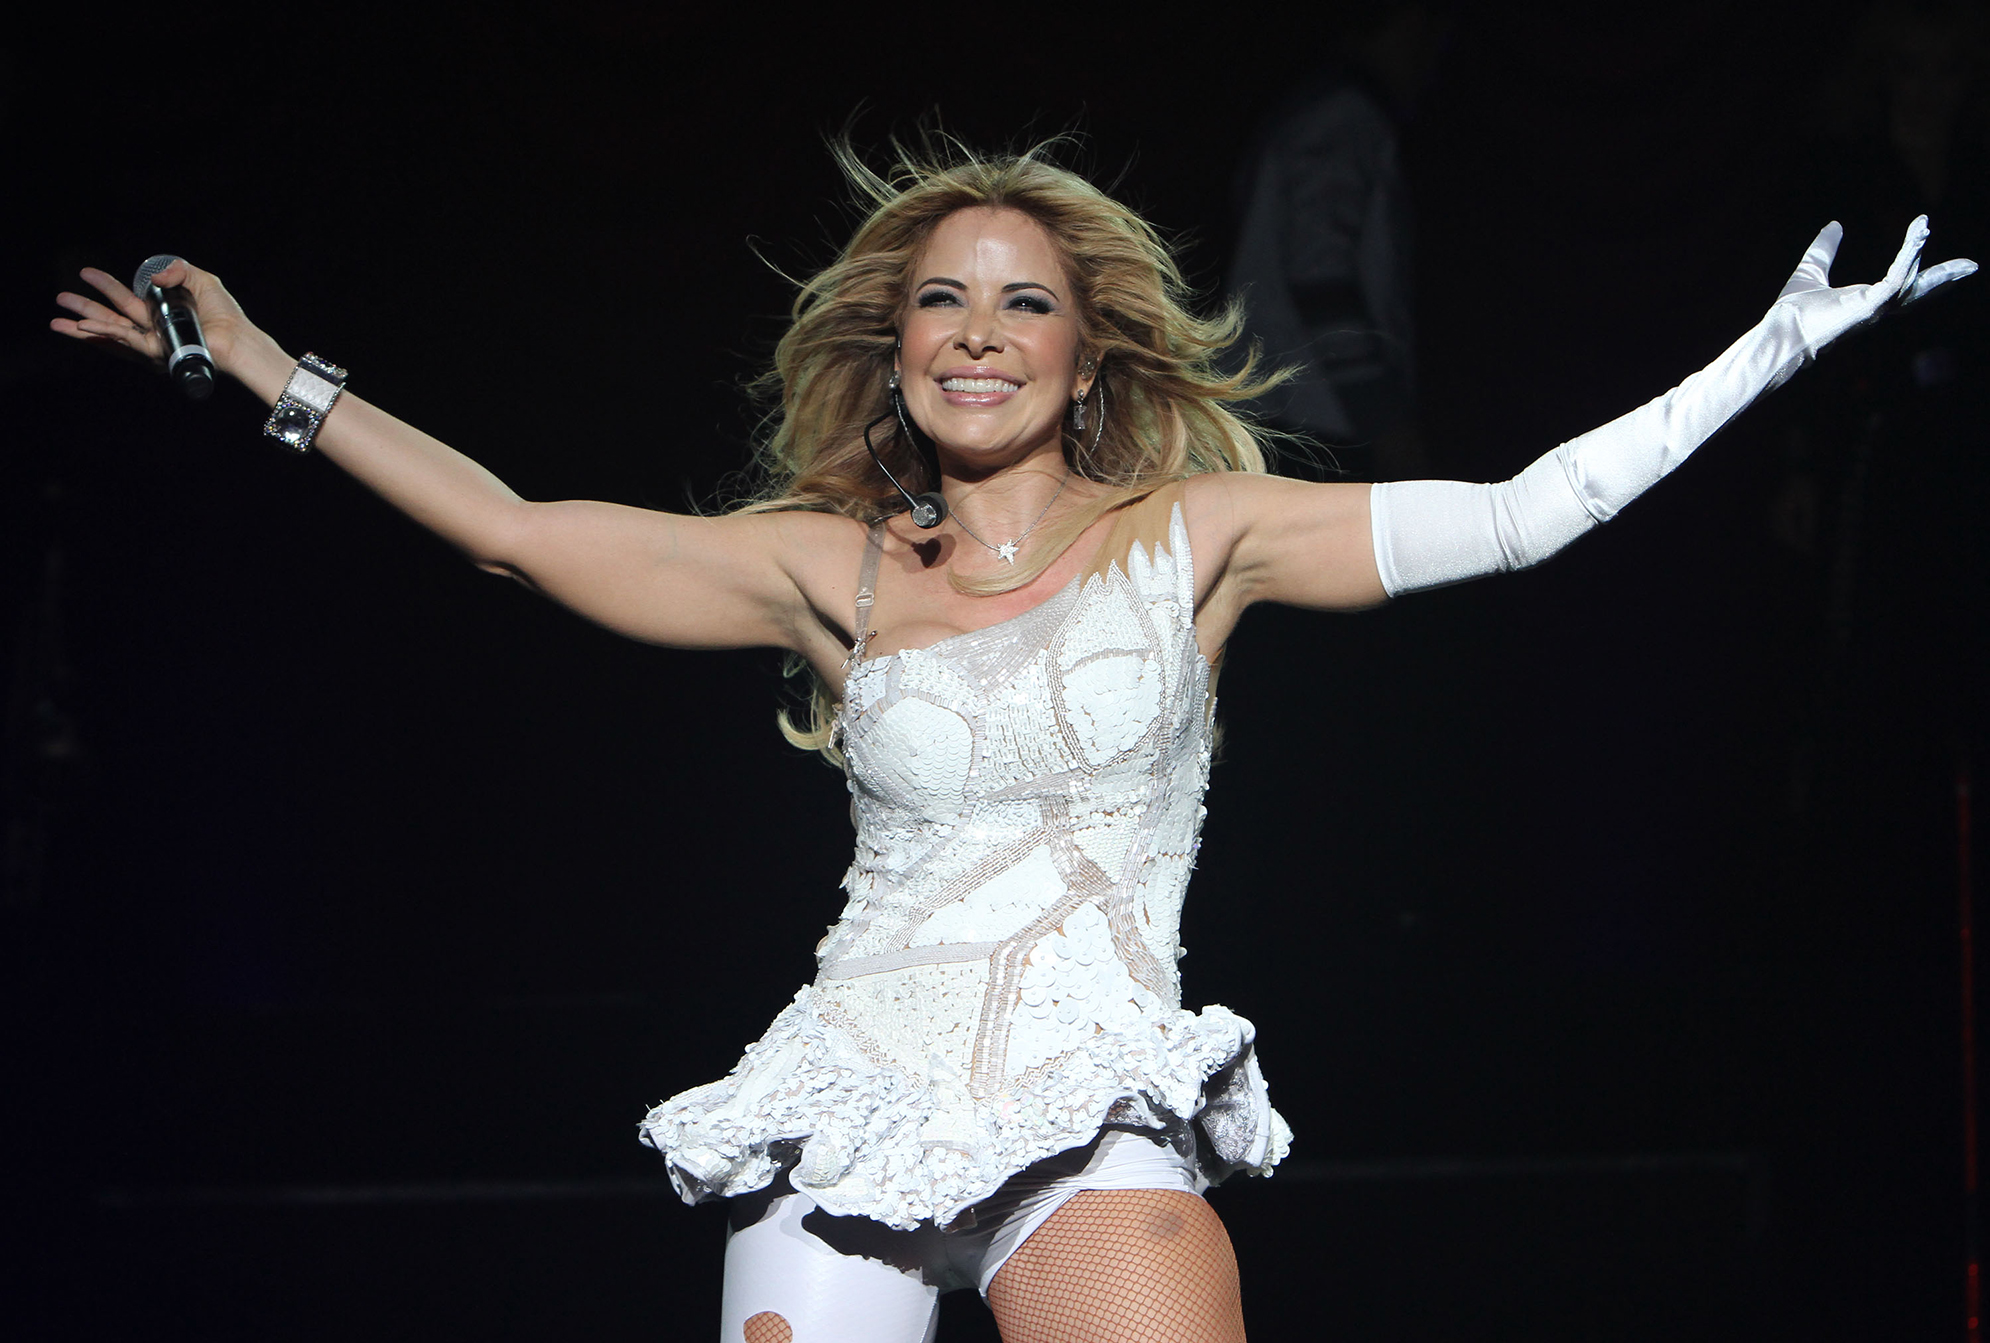 MIAMI BEACH, FL - APRIL 14: Gloria Trevi performs at Fillmore Miami Beach on April 14, 2012 in Miami Beach, Florida. (Photo by Alexander Tamargo/Getty Images)